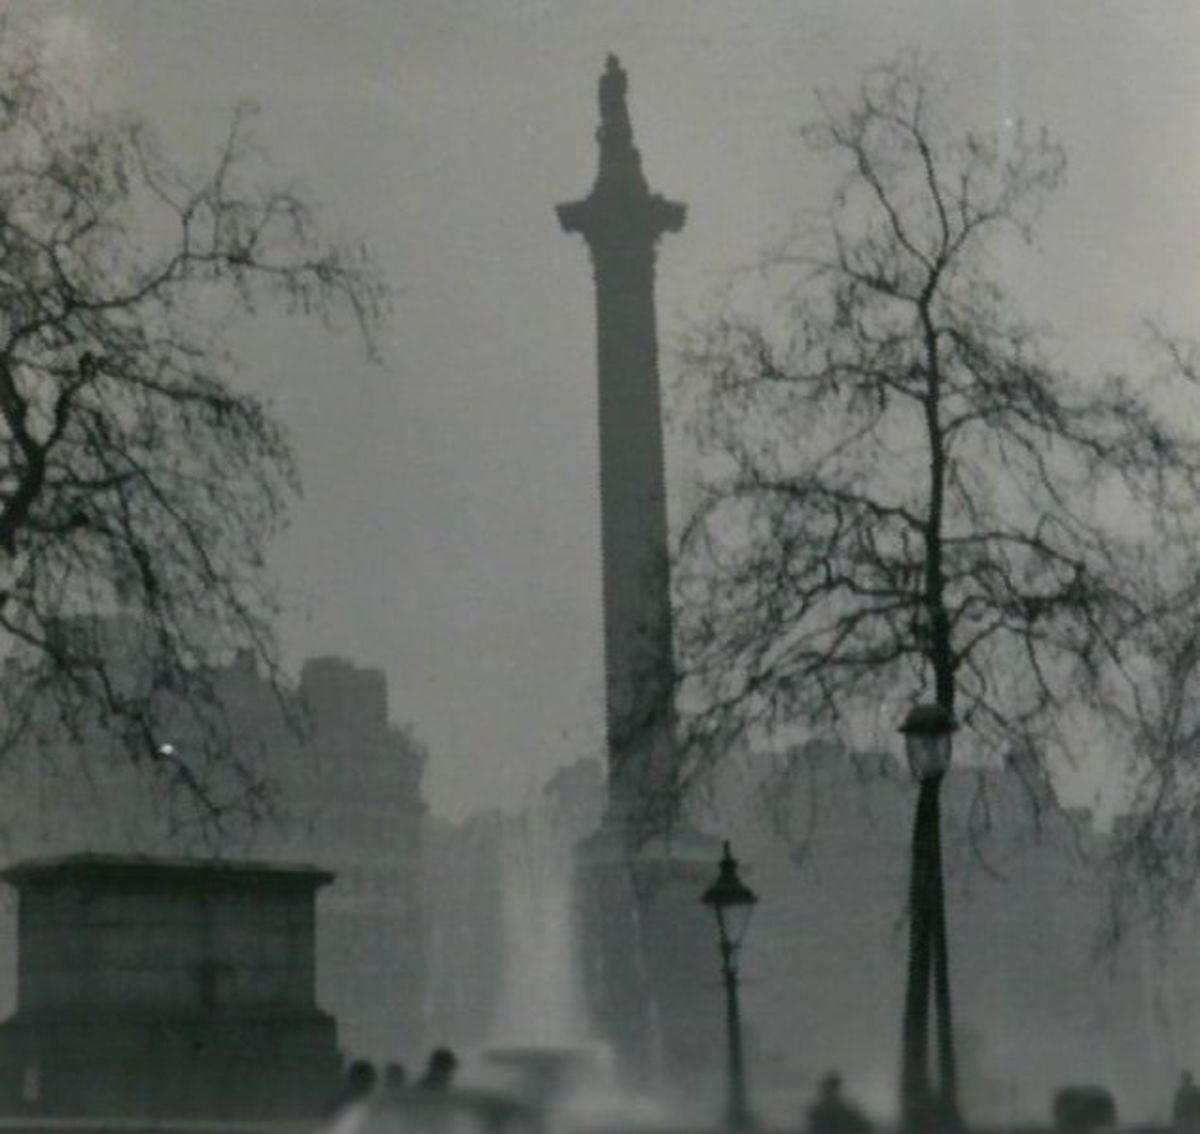 Nelson's Column in London during the Great Smog of 1952